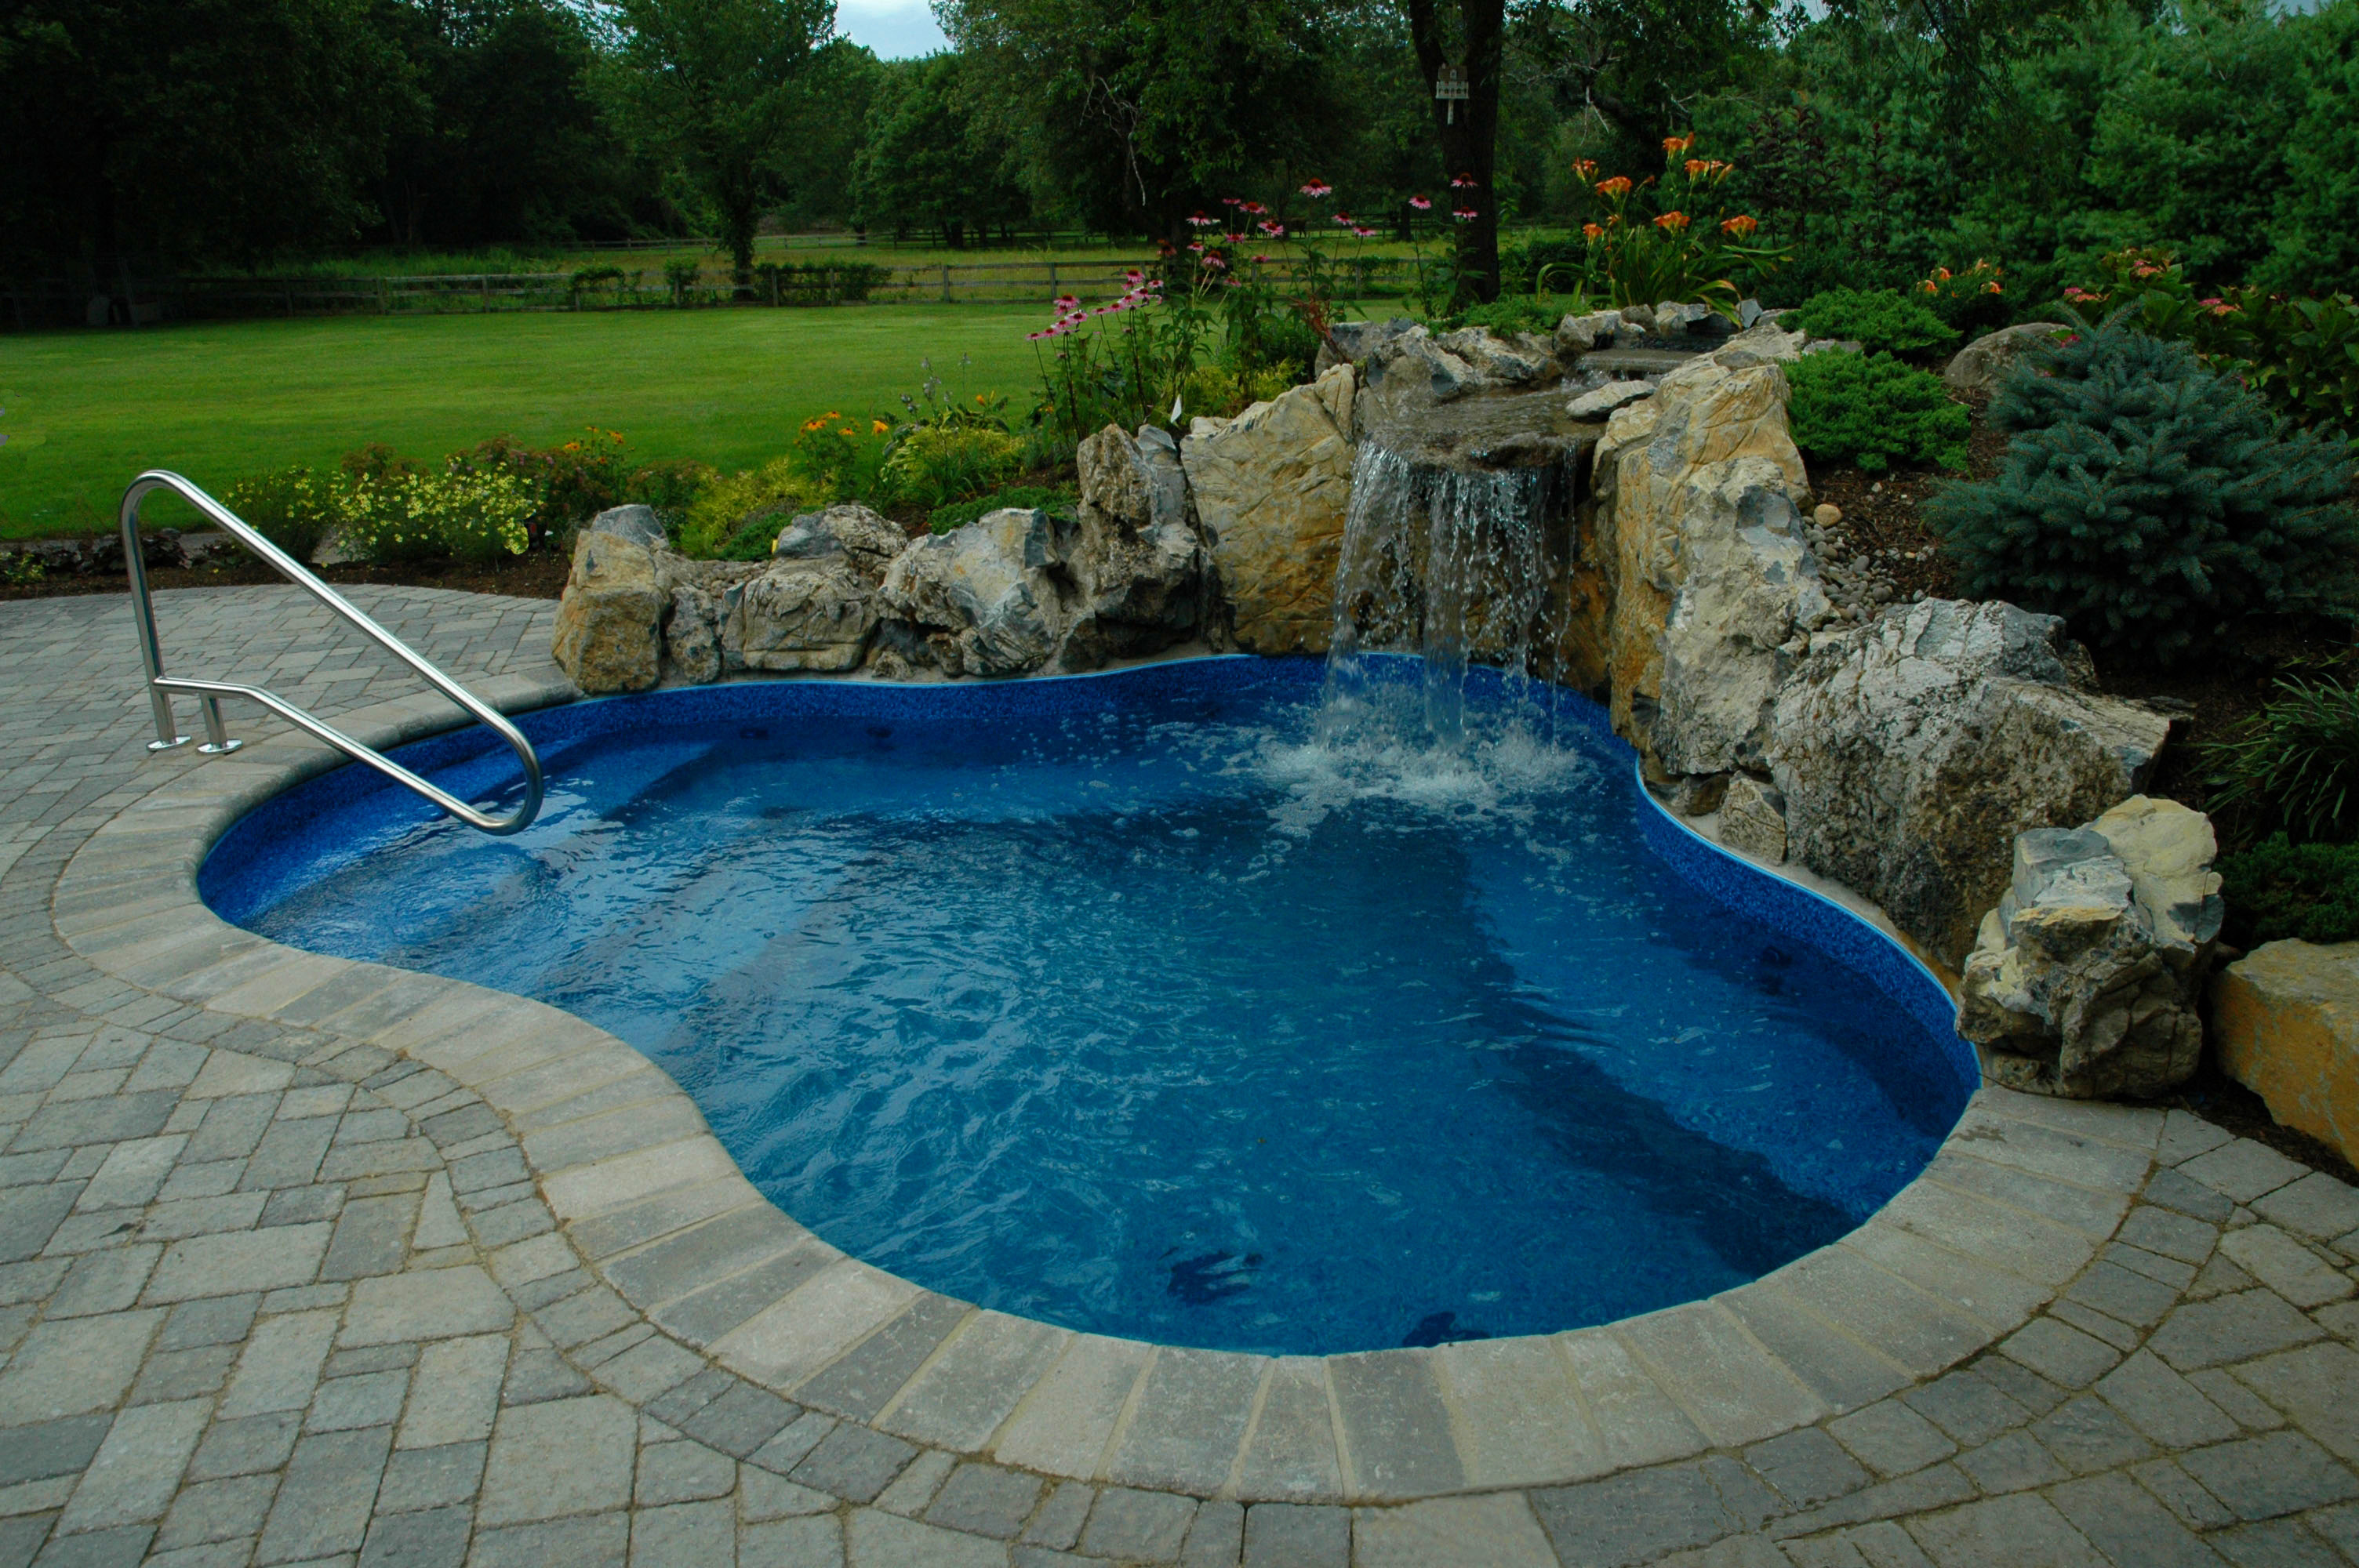 Cool Backyard Pool Designs for Your Outdoor Space: Backyard Inground Pool Designs | Pictures Of Inground Pools | Backyard Pool Designs